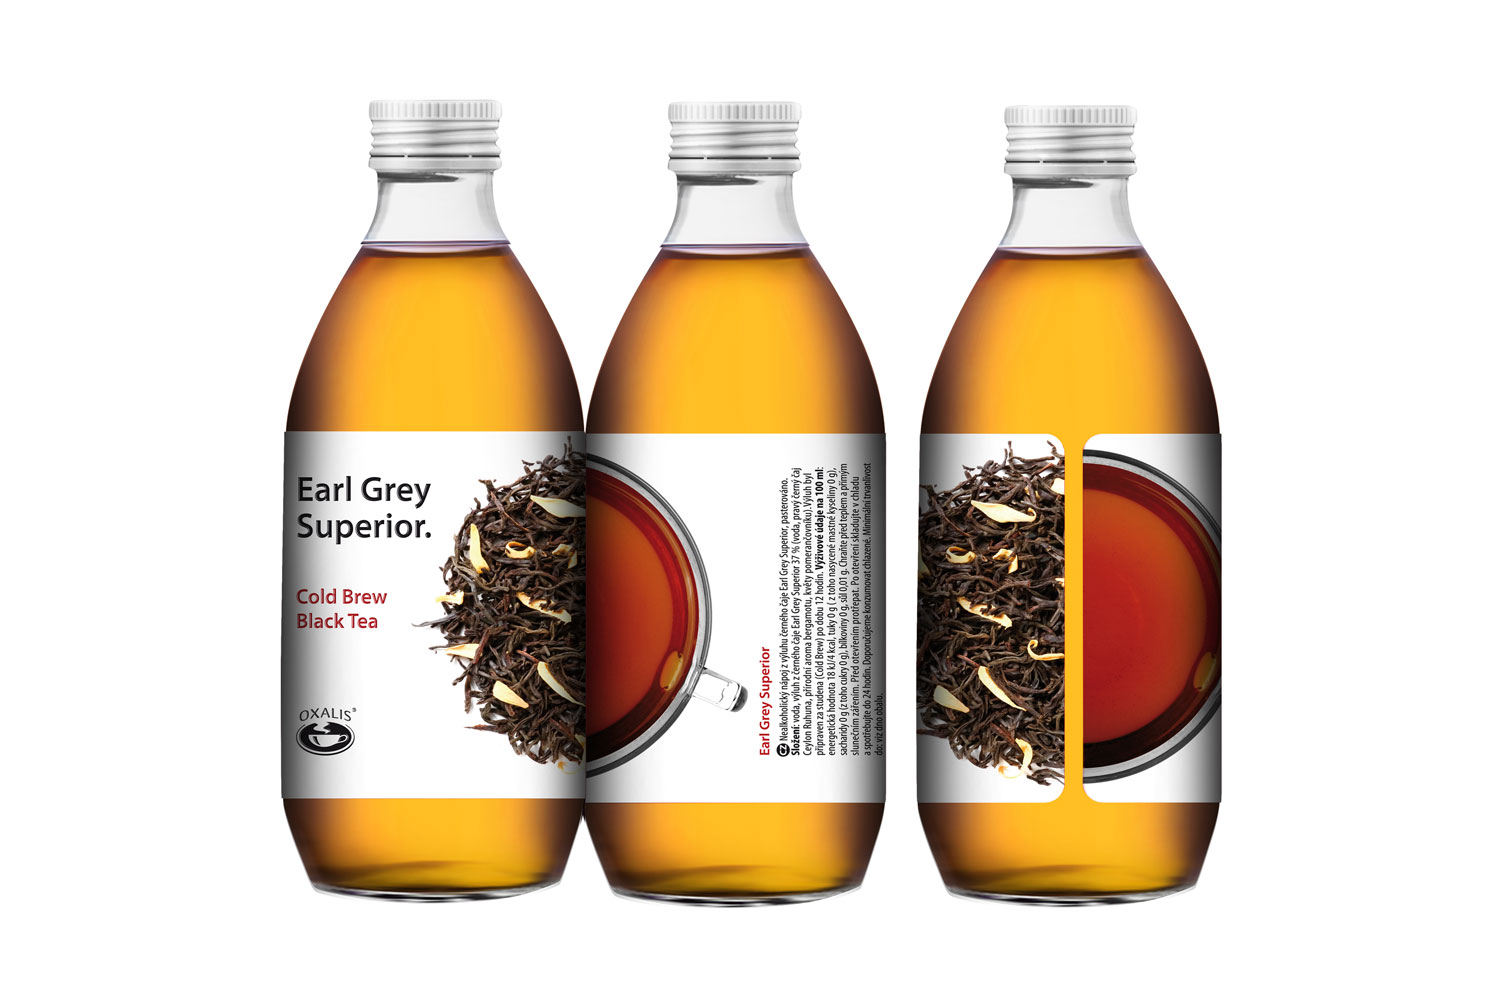 Earl Grey Superior - Cold Brew Black Tea 330 ml